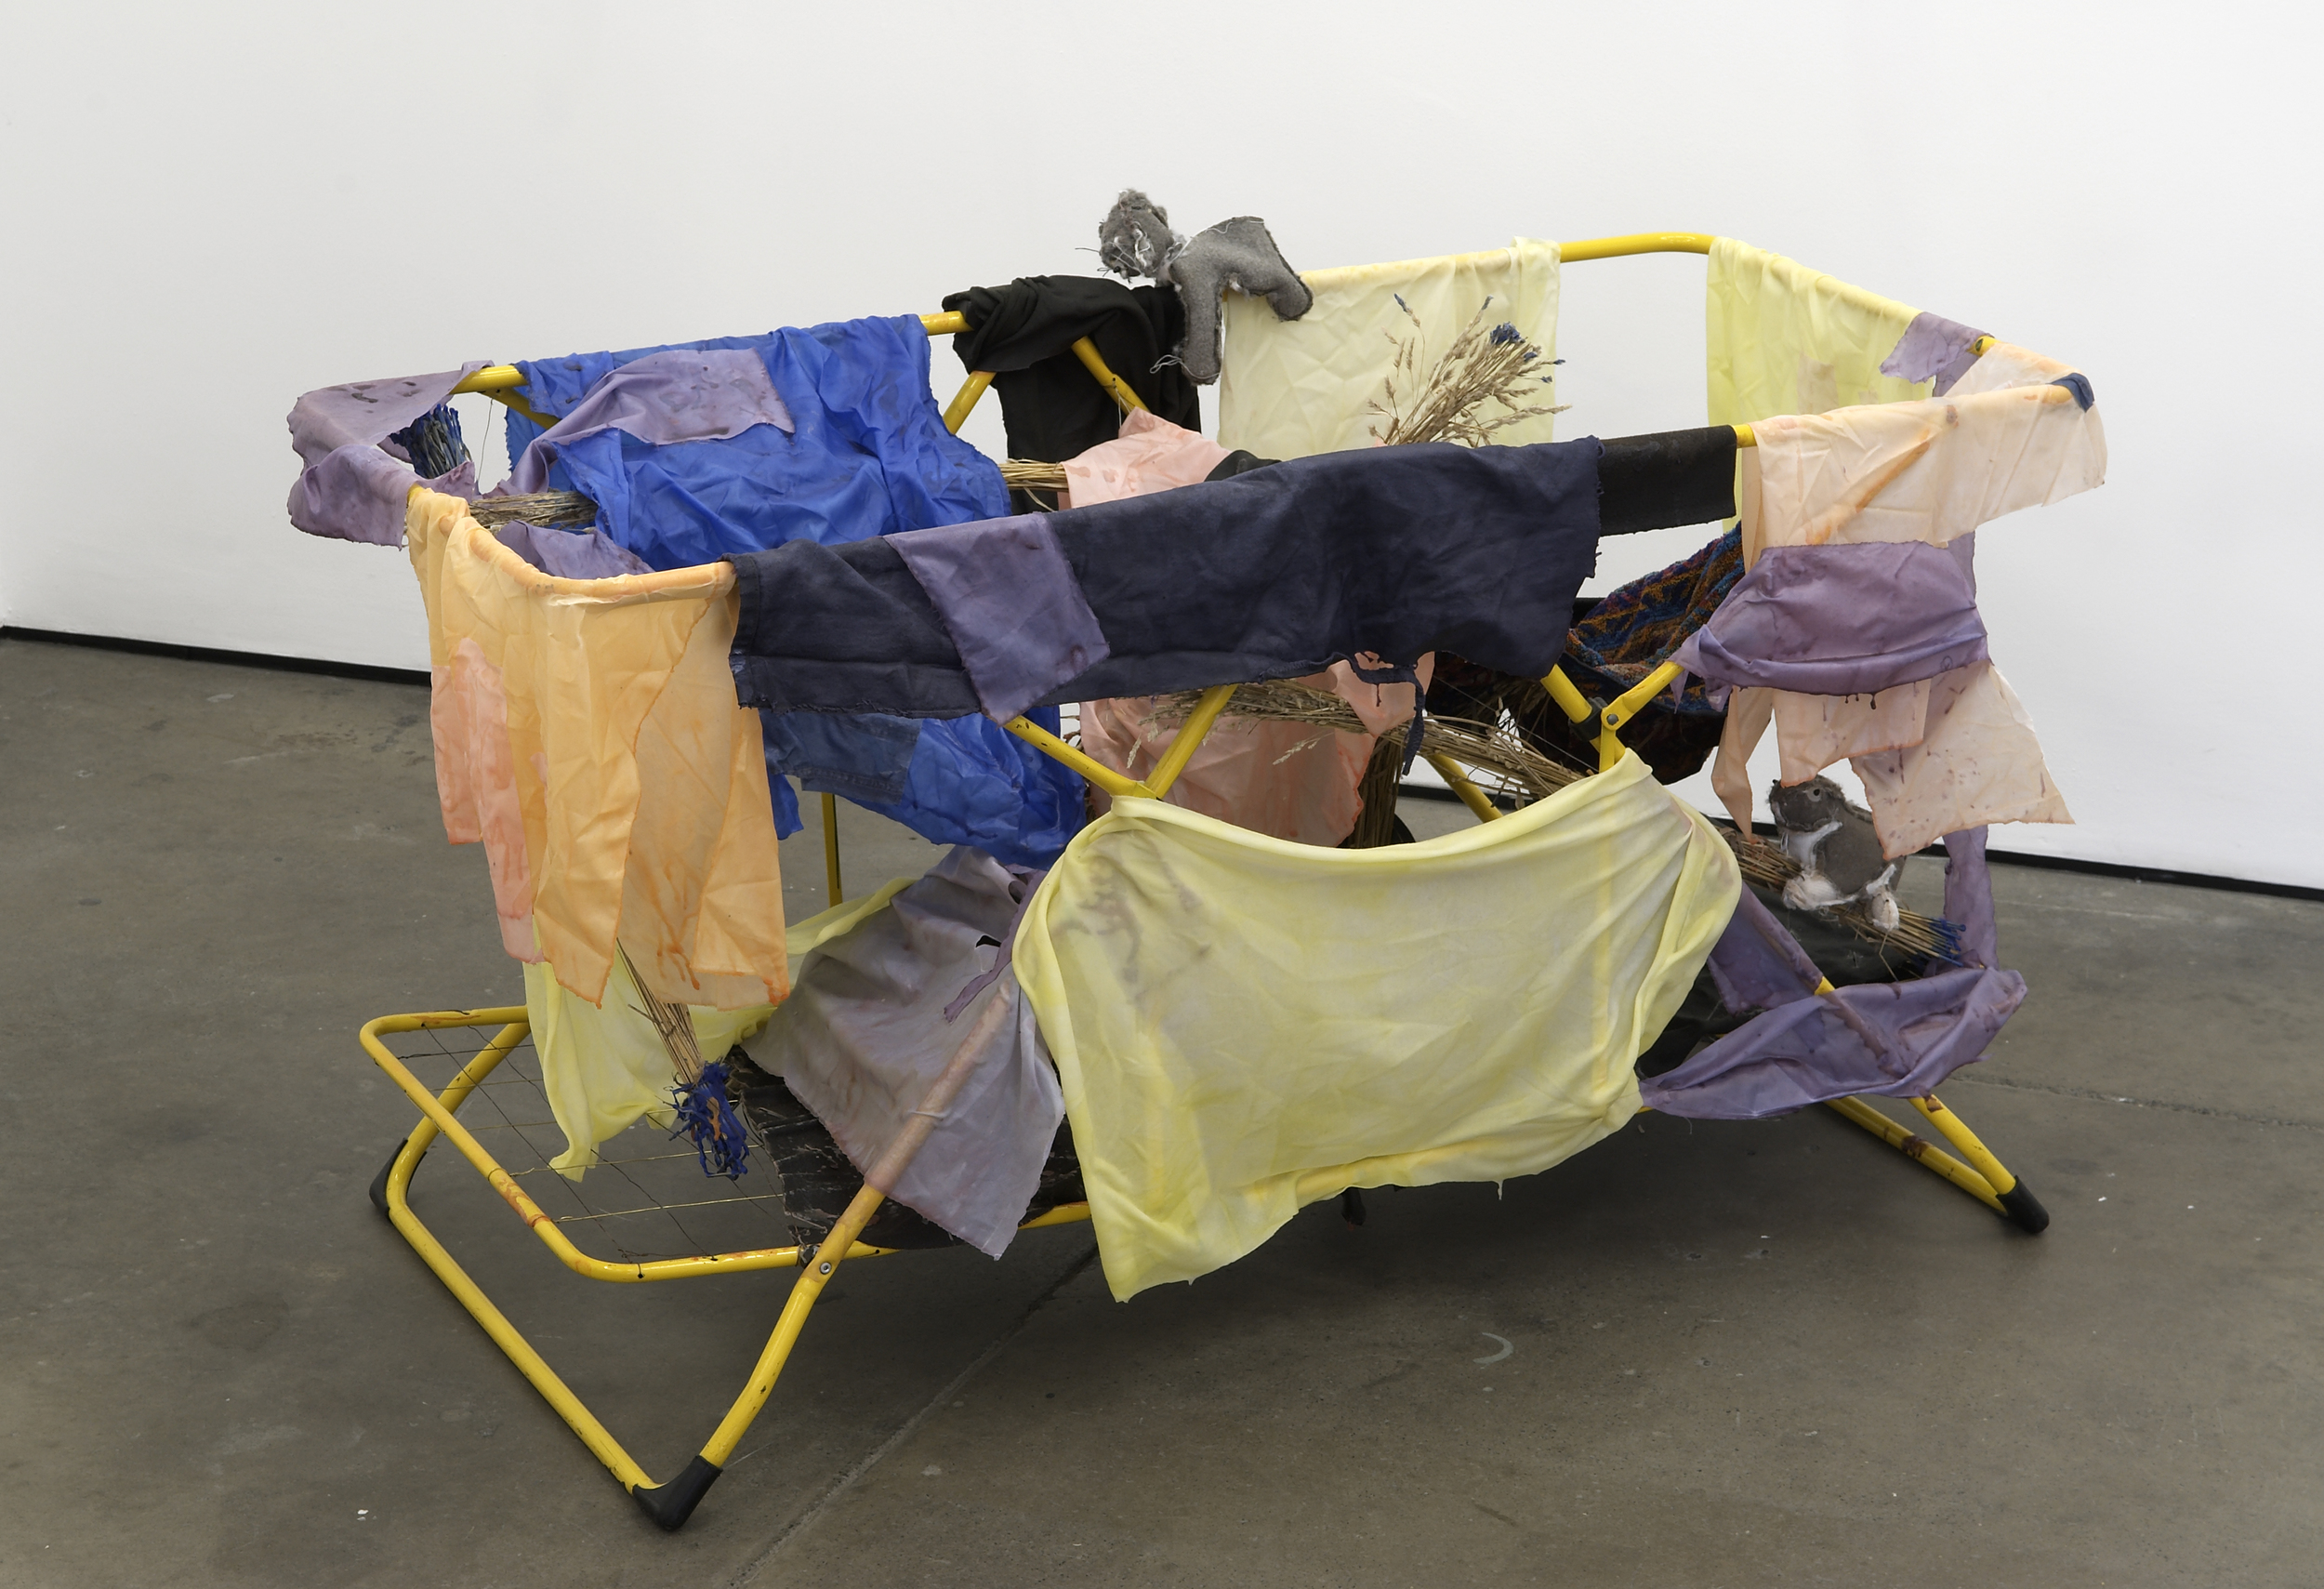 Not Beyond Repair 2008 fabric, pigmented wax, towel, soft toys, wire, straw, plastic, metal paint 81 x 132 x 80cm